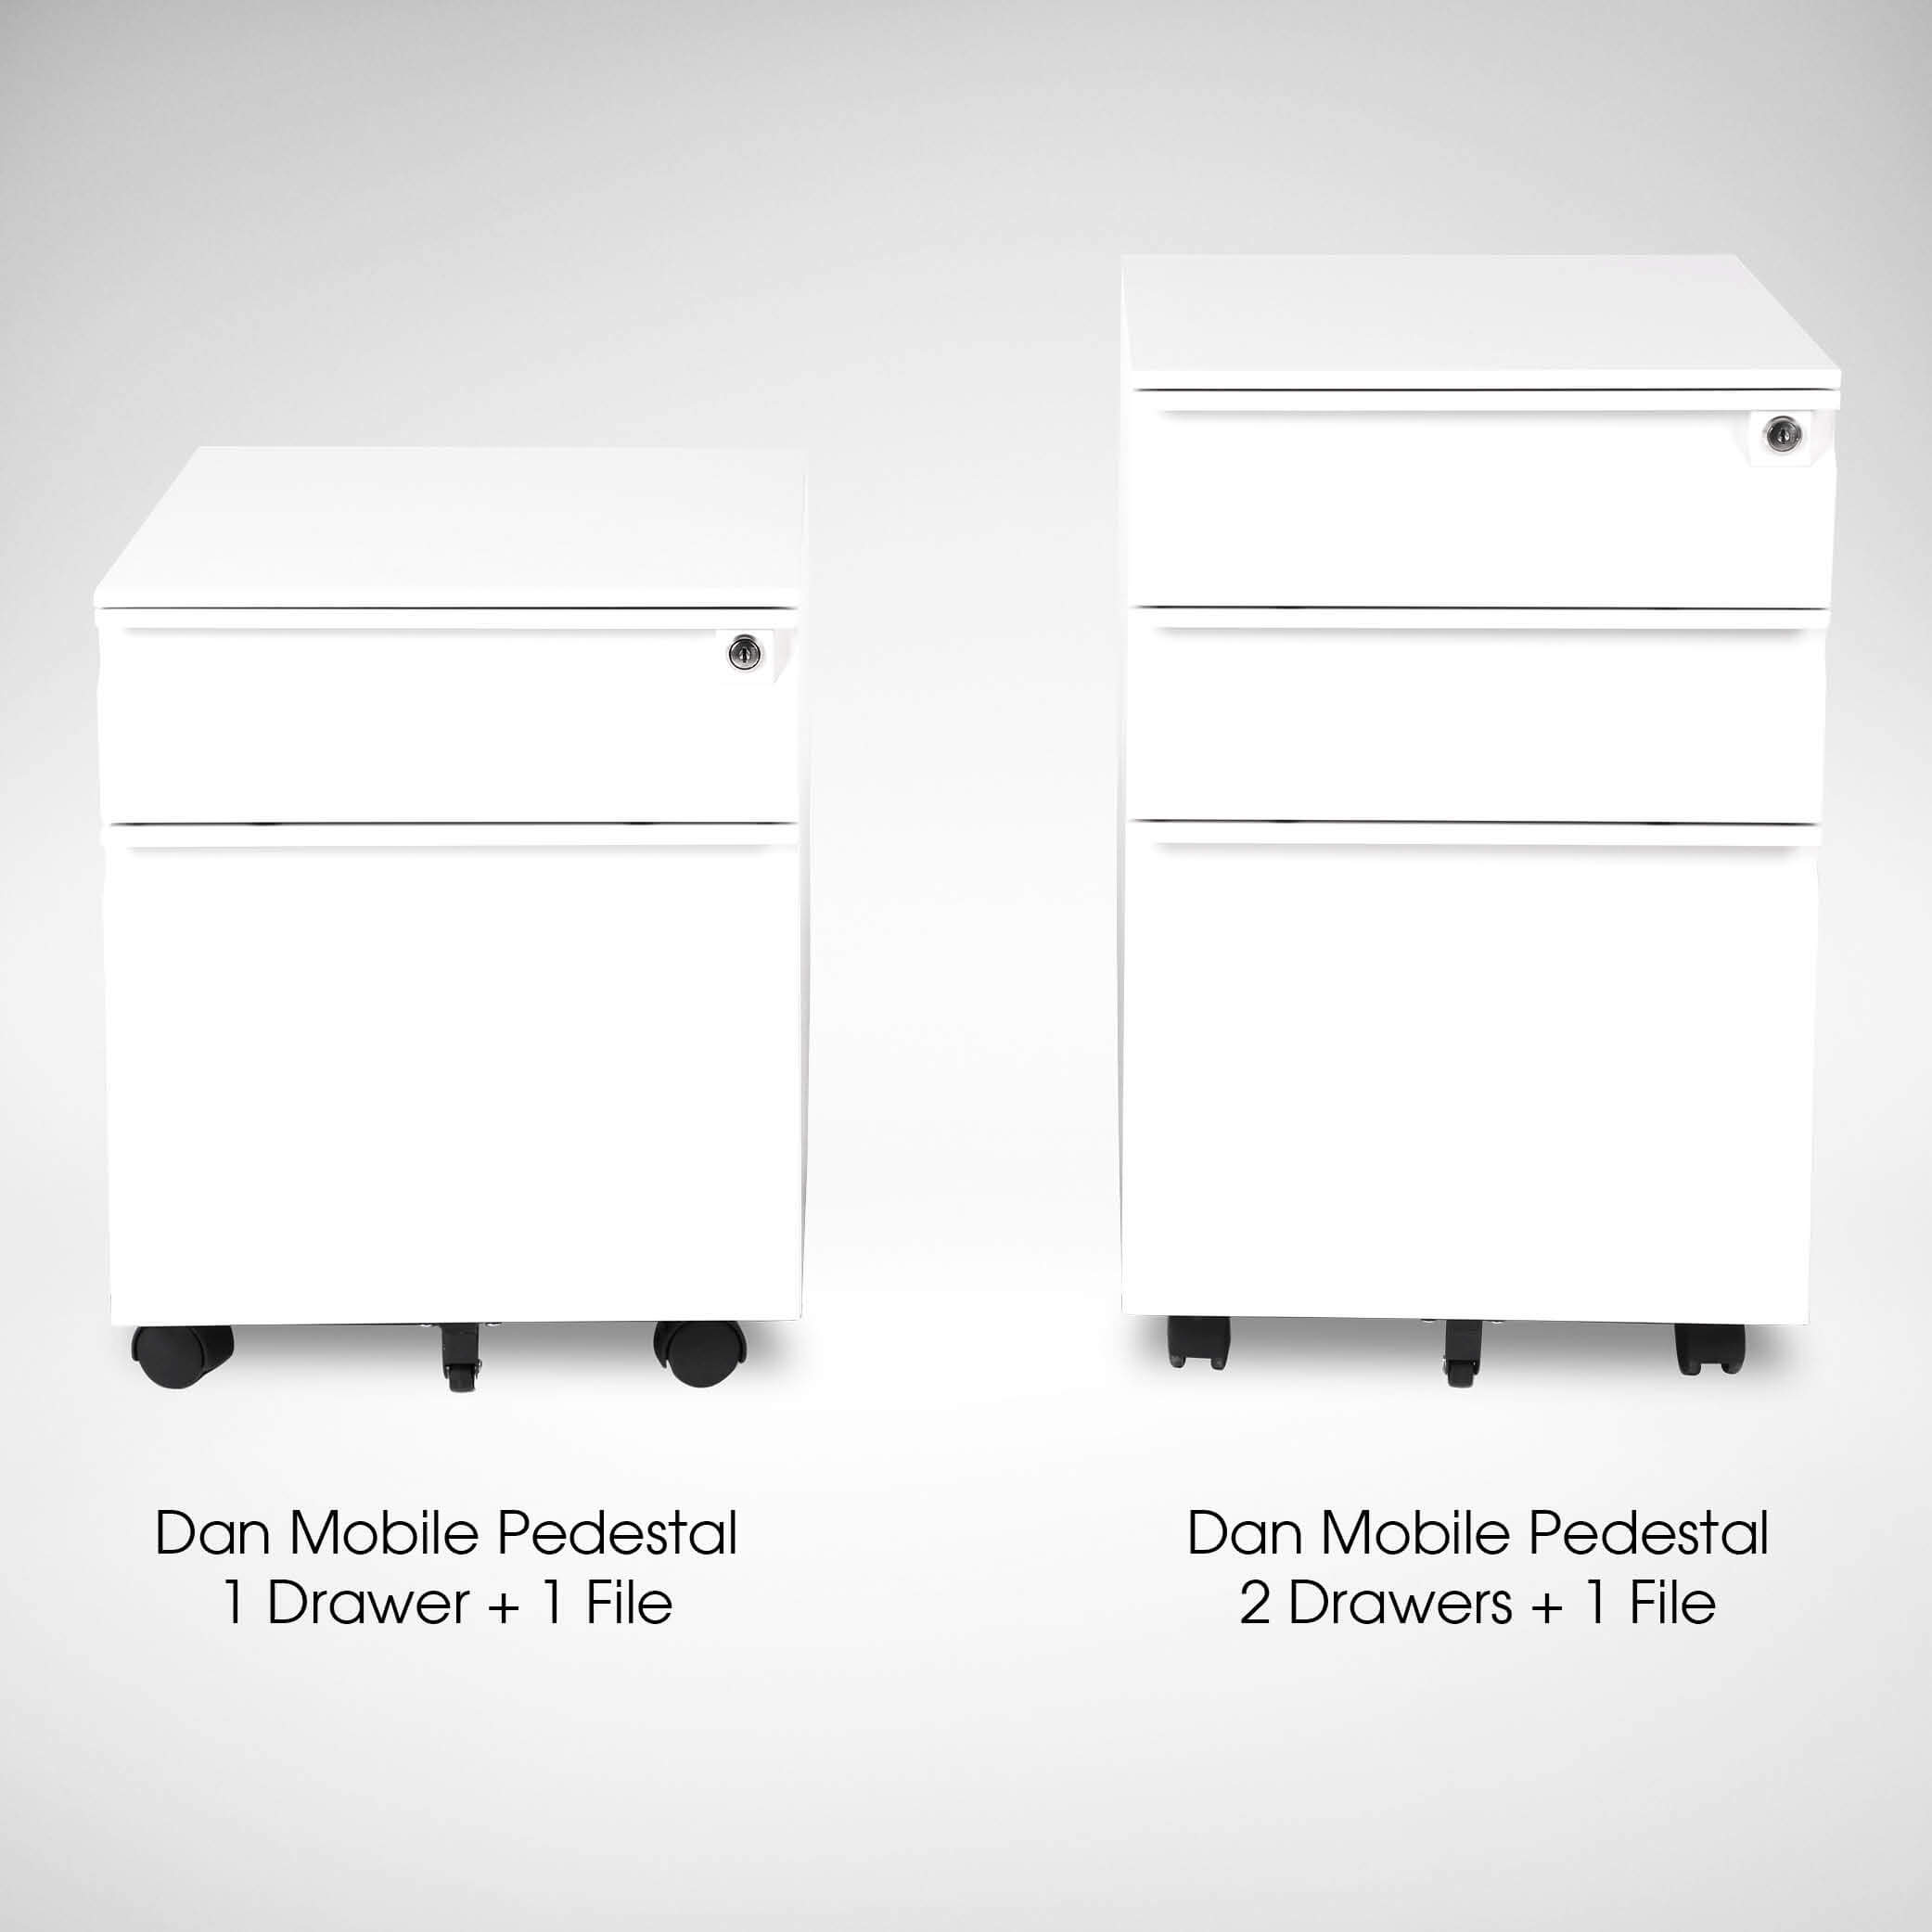 Dan Mobile Pedestal 1 Drawer Comfort Design The